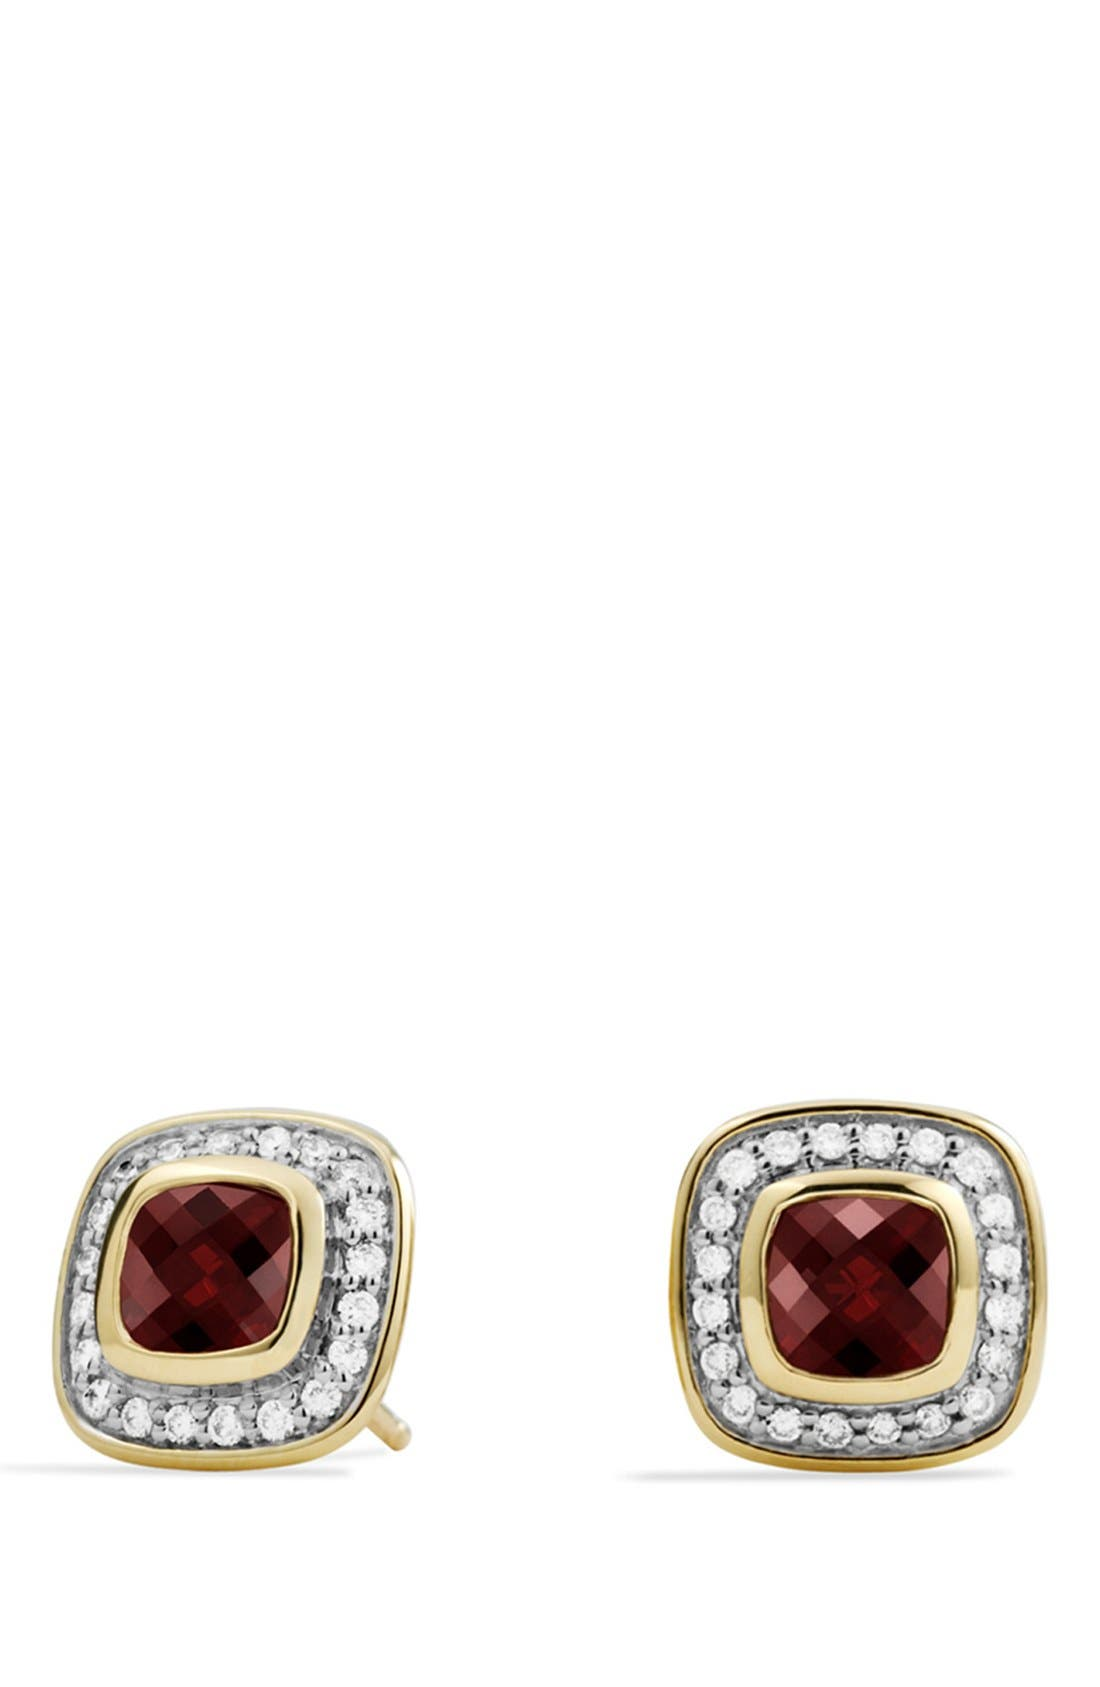 'Petite Albion' Earrings with Garnet and Diamonds,                             Main thumbnail 1, color,                             601